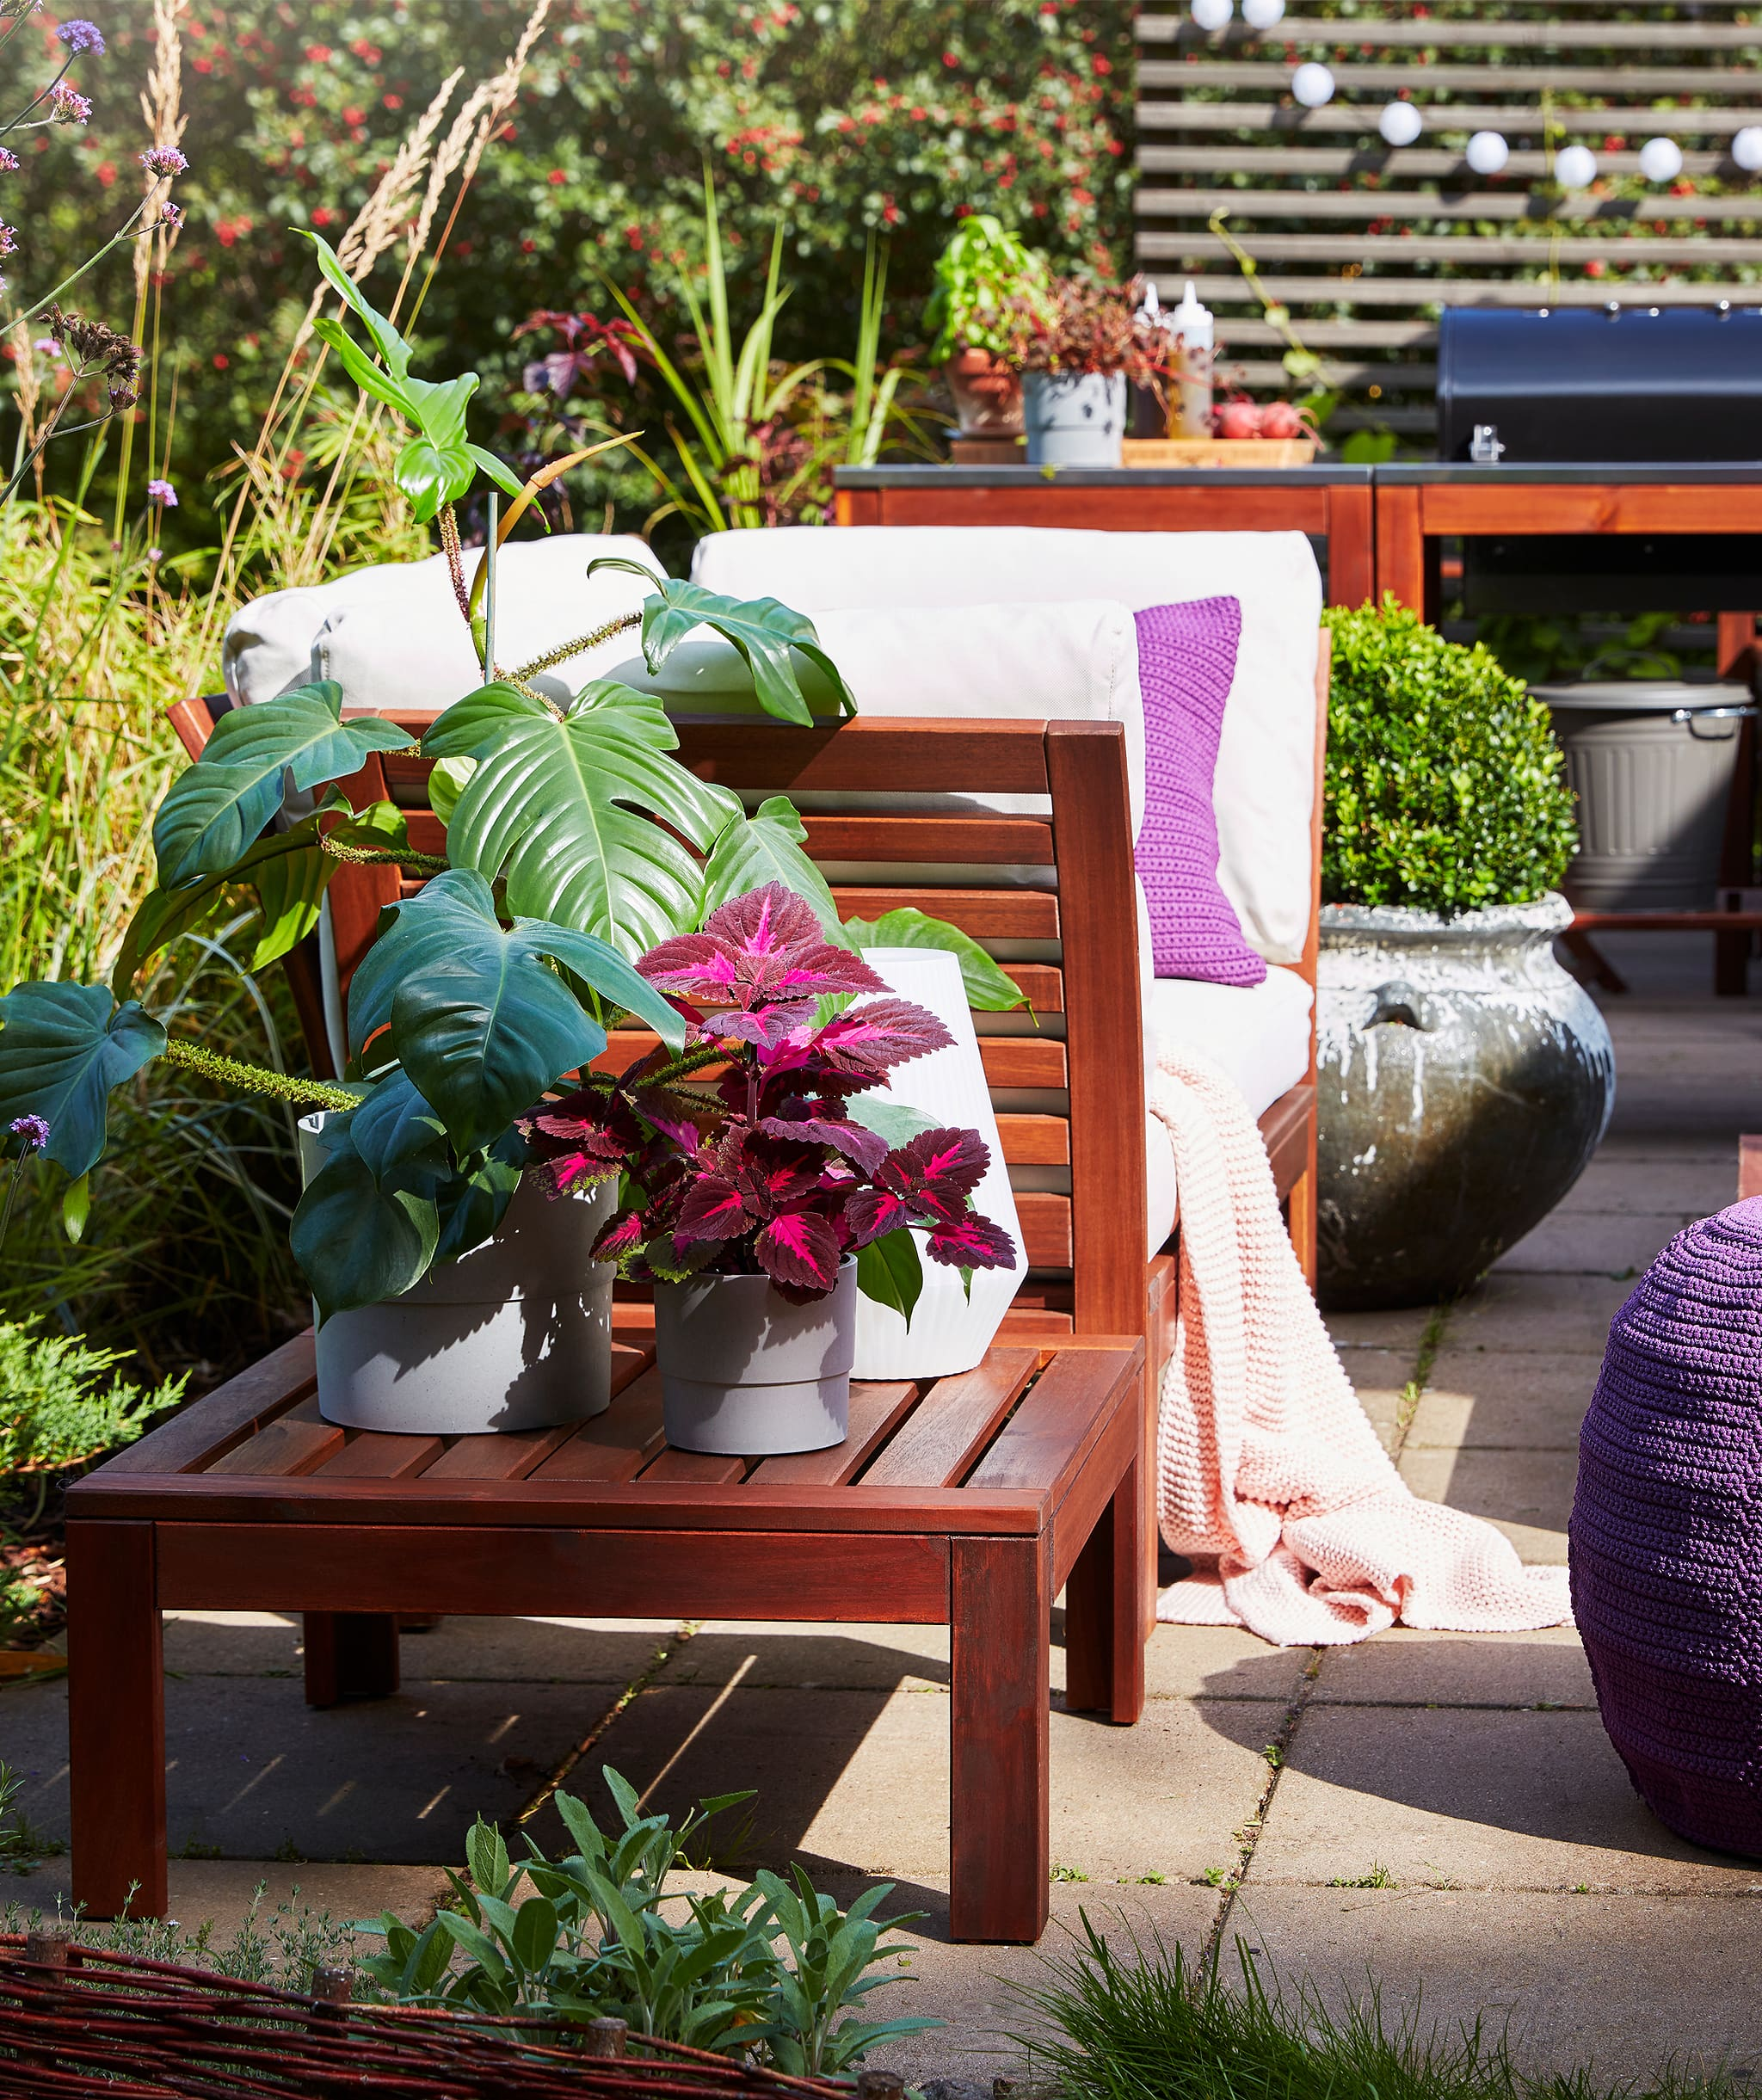 Plants in different sizes and colours placed on a terrace with outdoor furniture and a garden in the background.